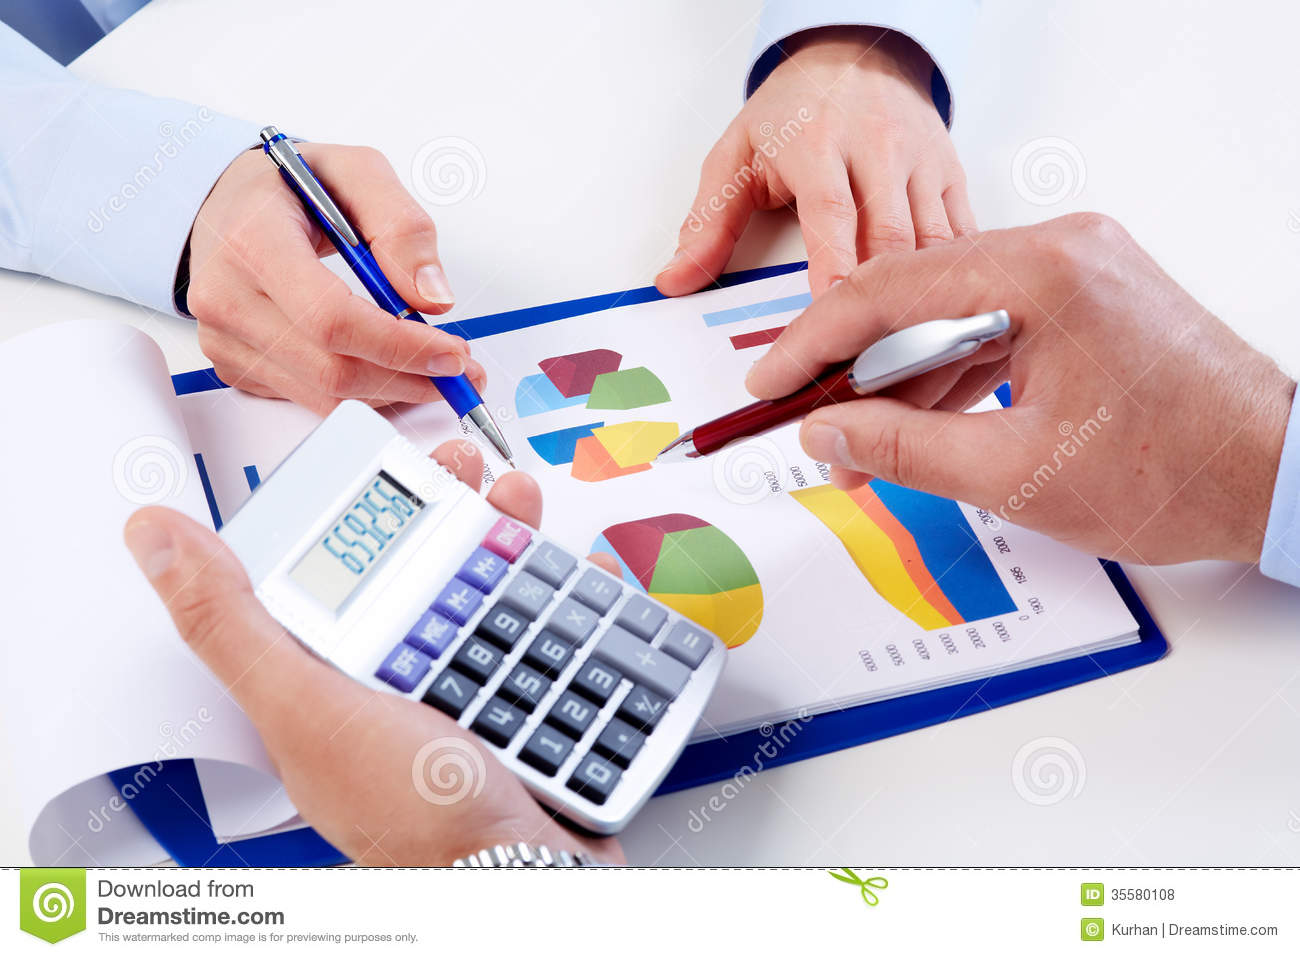 calculating map with Royalty Free Stock Photos Hands Business People Calculator Hand Finance Accounting Image35580108 on Achieve Fitness Treadmill Lubricant also Number Review in addition Refractive Glass Shader together with Royalty Free Stock Images Man Woman S Hands Over Pregnant Belly Image20140959 in addition Colmar Eguisheim.